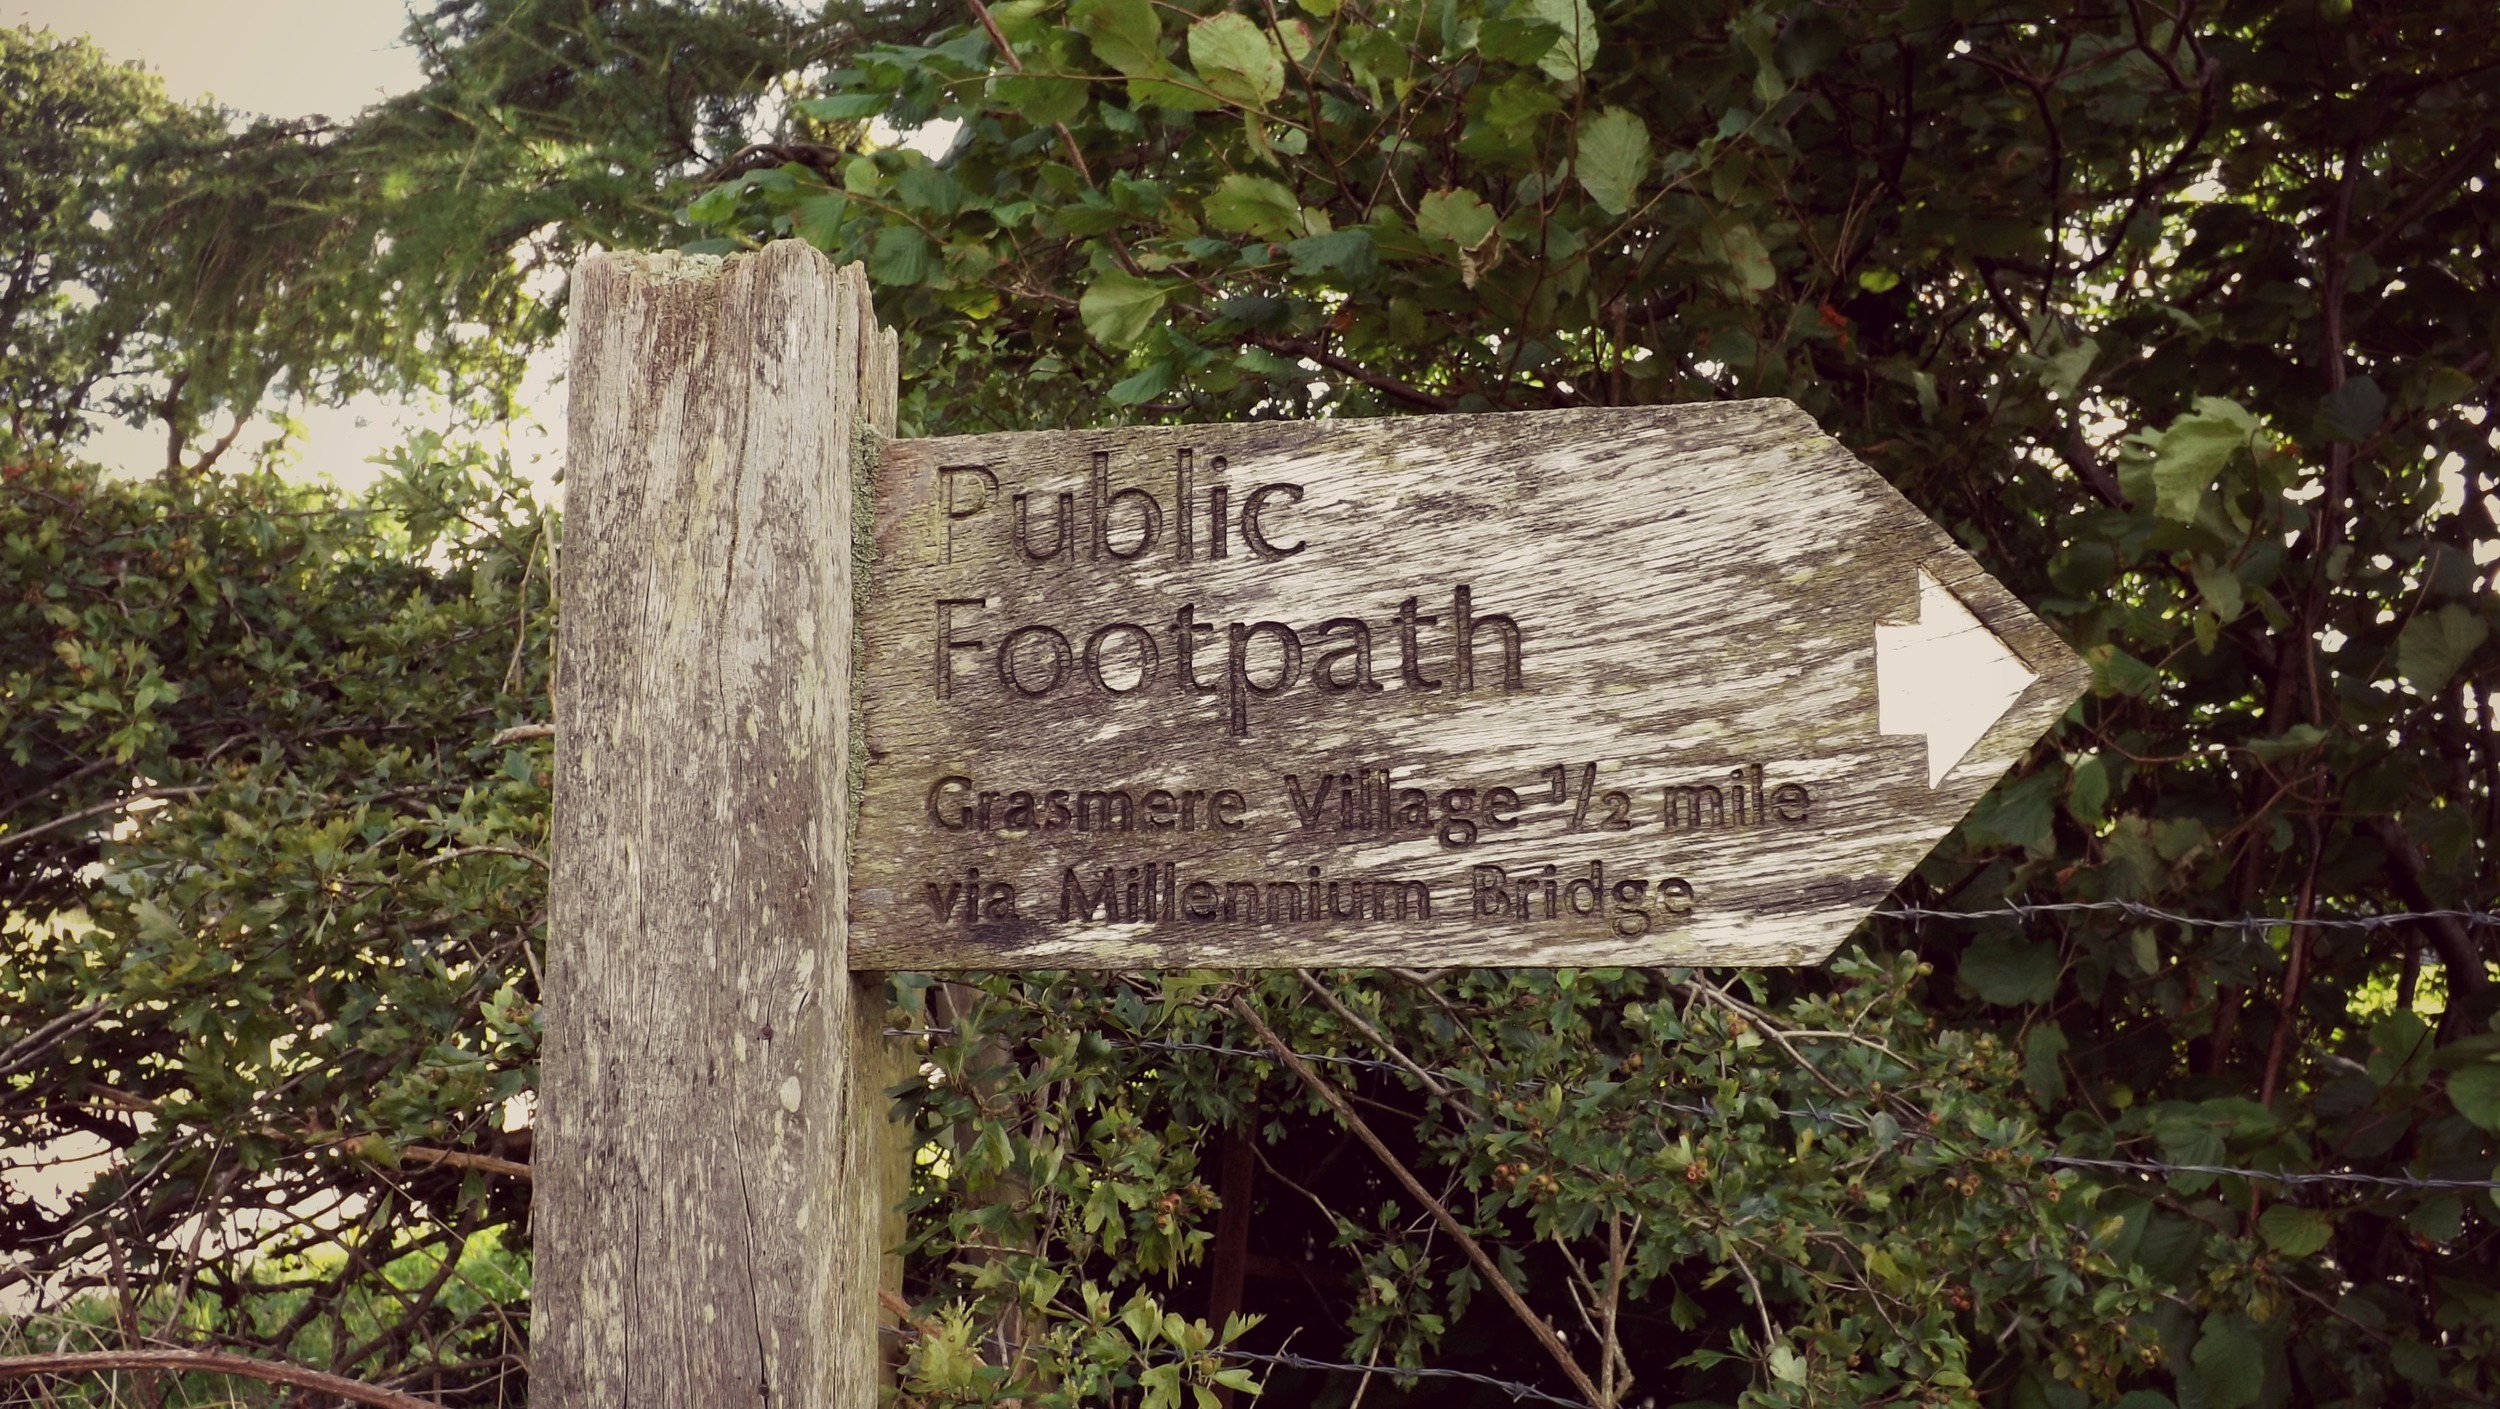 Footpath-Sign-Creative-Countryside